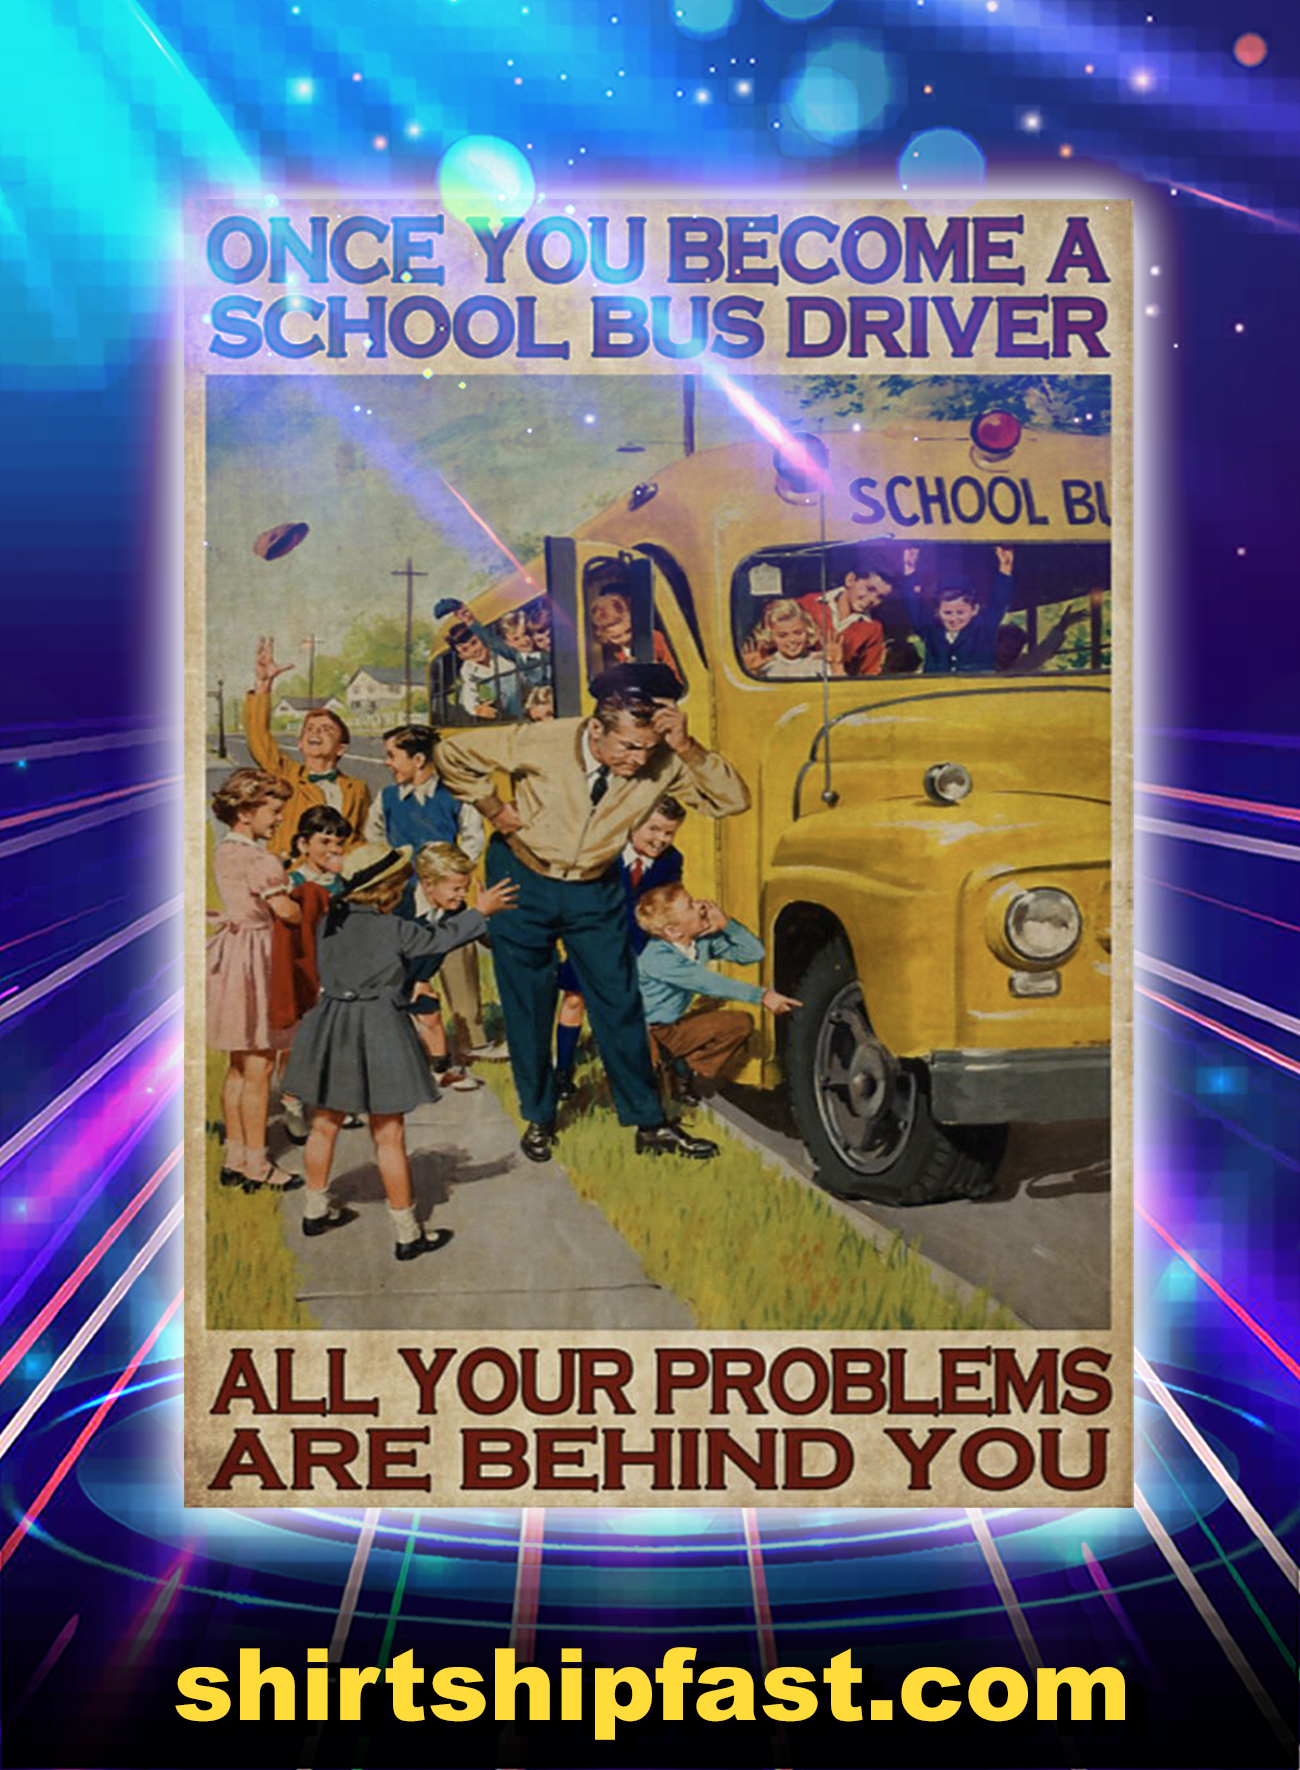 Once you become a school bus driver all your problems are behind you poster - A1